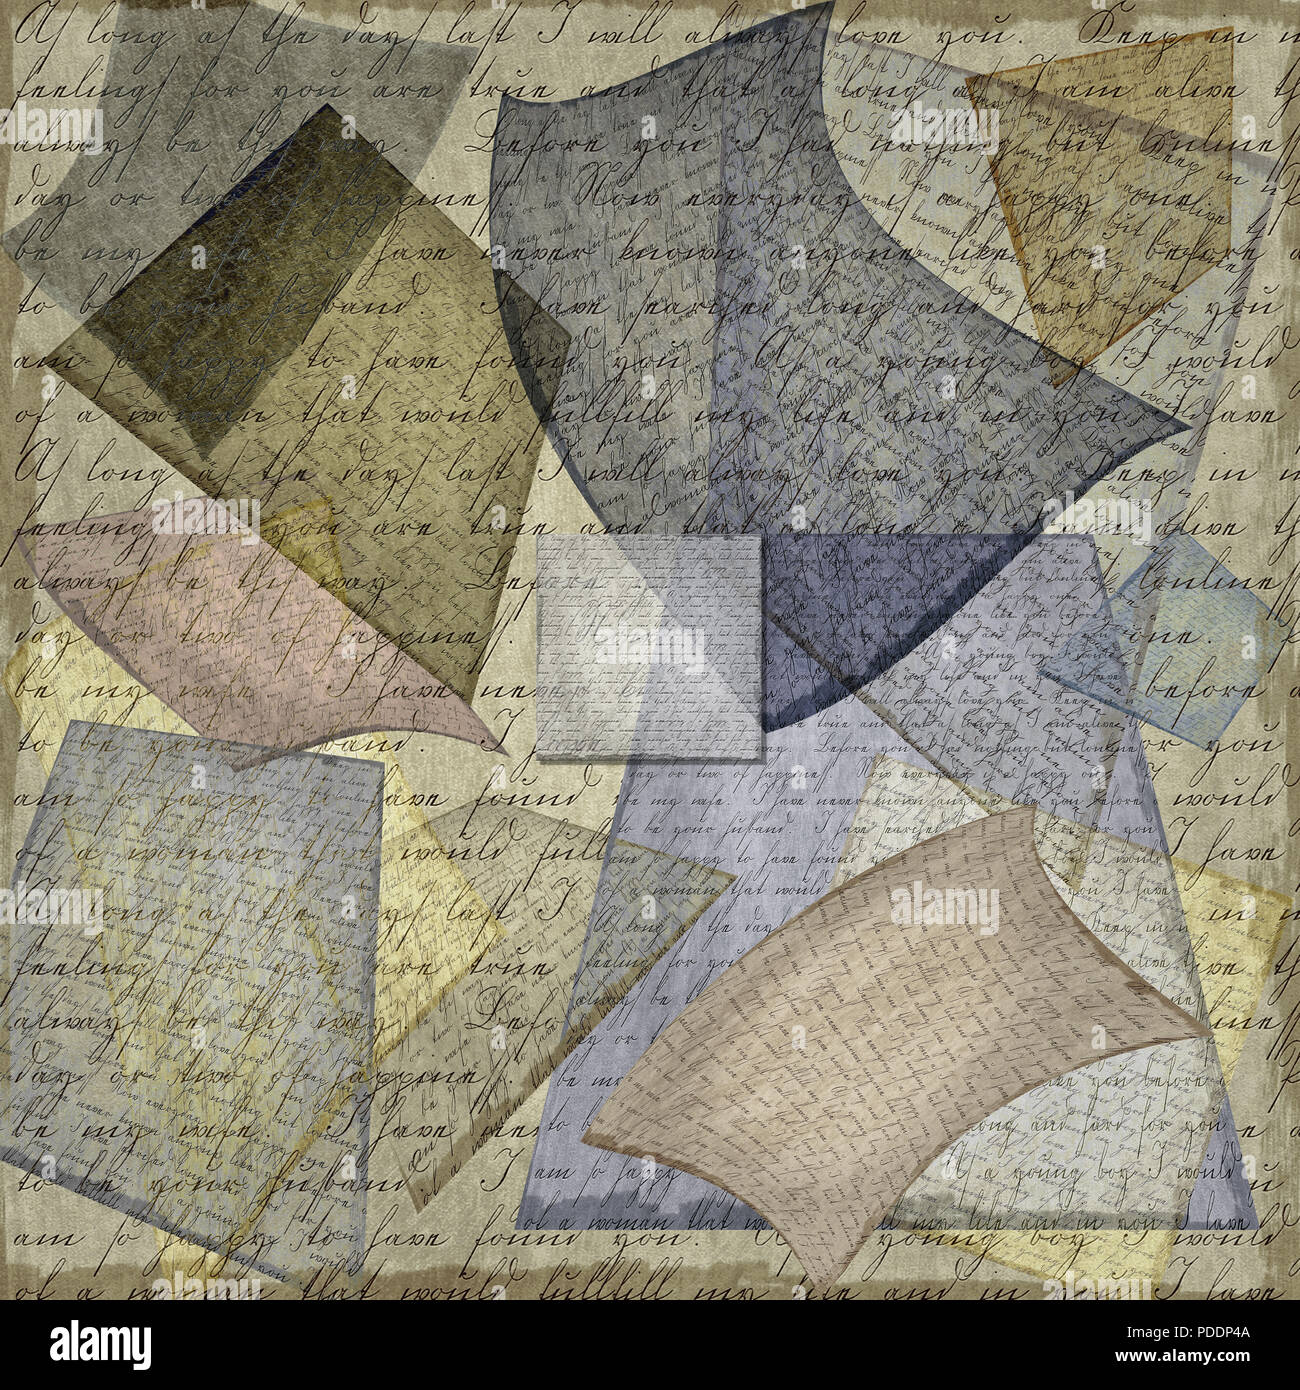 An old handwritten letter has been duplicated, altered, distorted, given multiple tones and hues, and been highly textured to create this intricately  - Stock Image